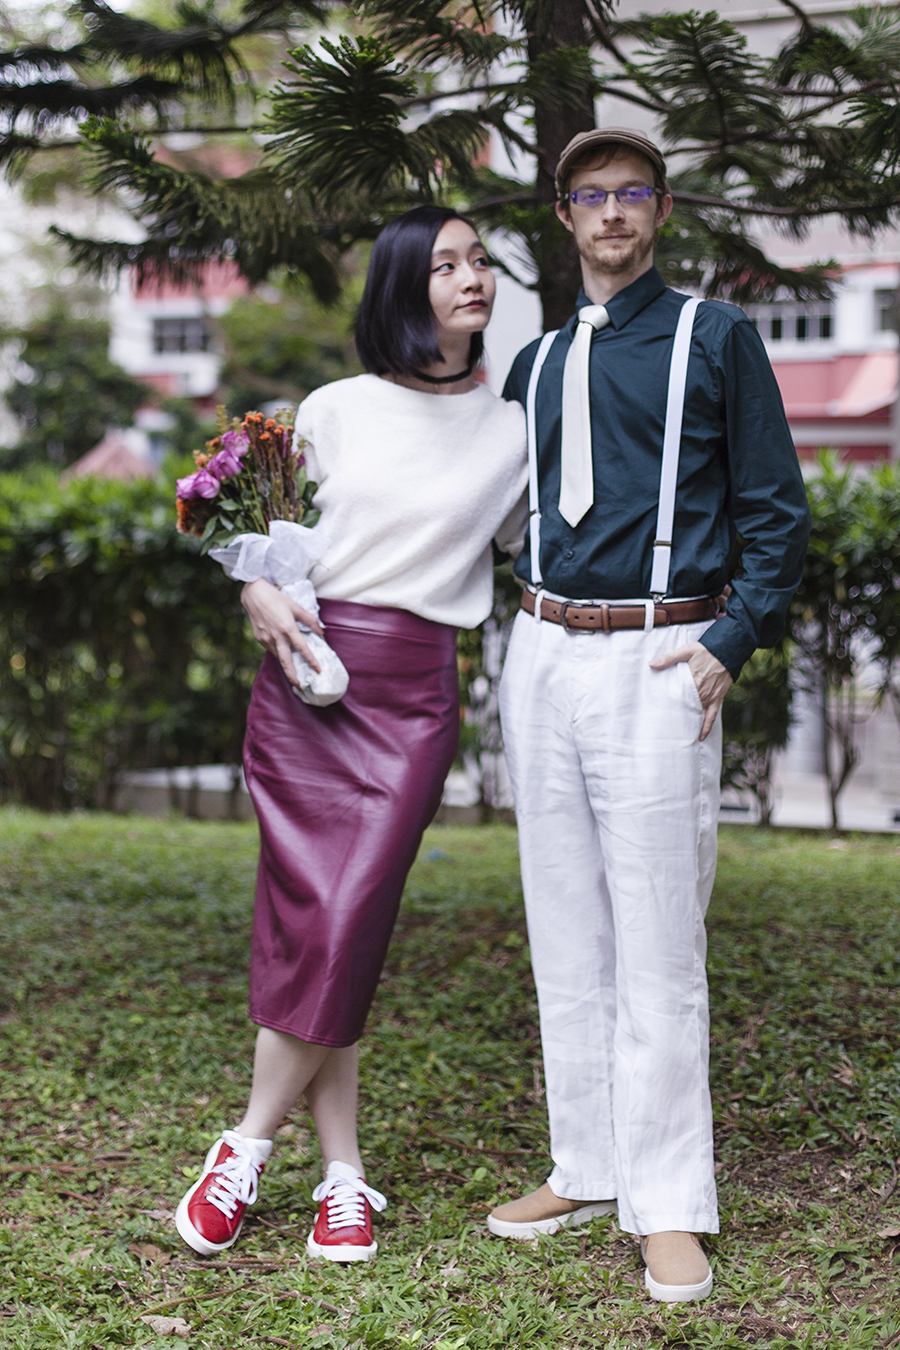 Christmas Couple Outfits: She's wearing - GU sweater, Dresslily christmas tree lace choker, CNDirect PU skirt, BeetleBug red sneakers, handmade flower bouquet. He's wearing - Mango green dress shirt, 2nd Edition flat cap, Timberland loafers,